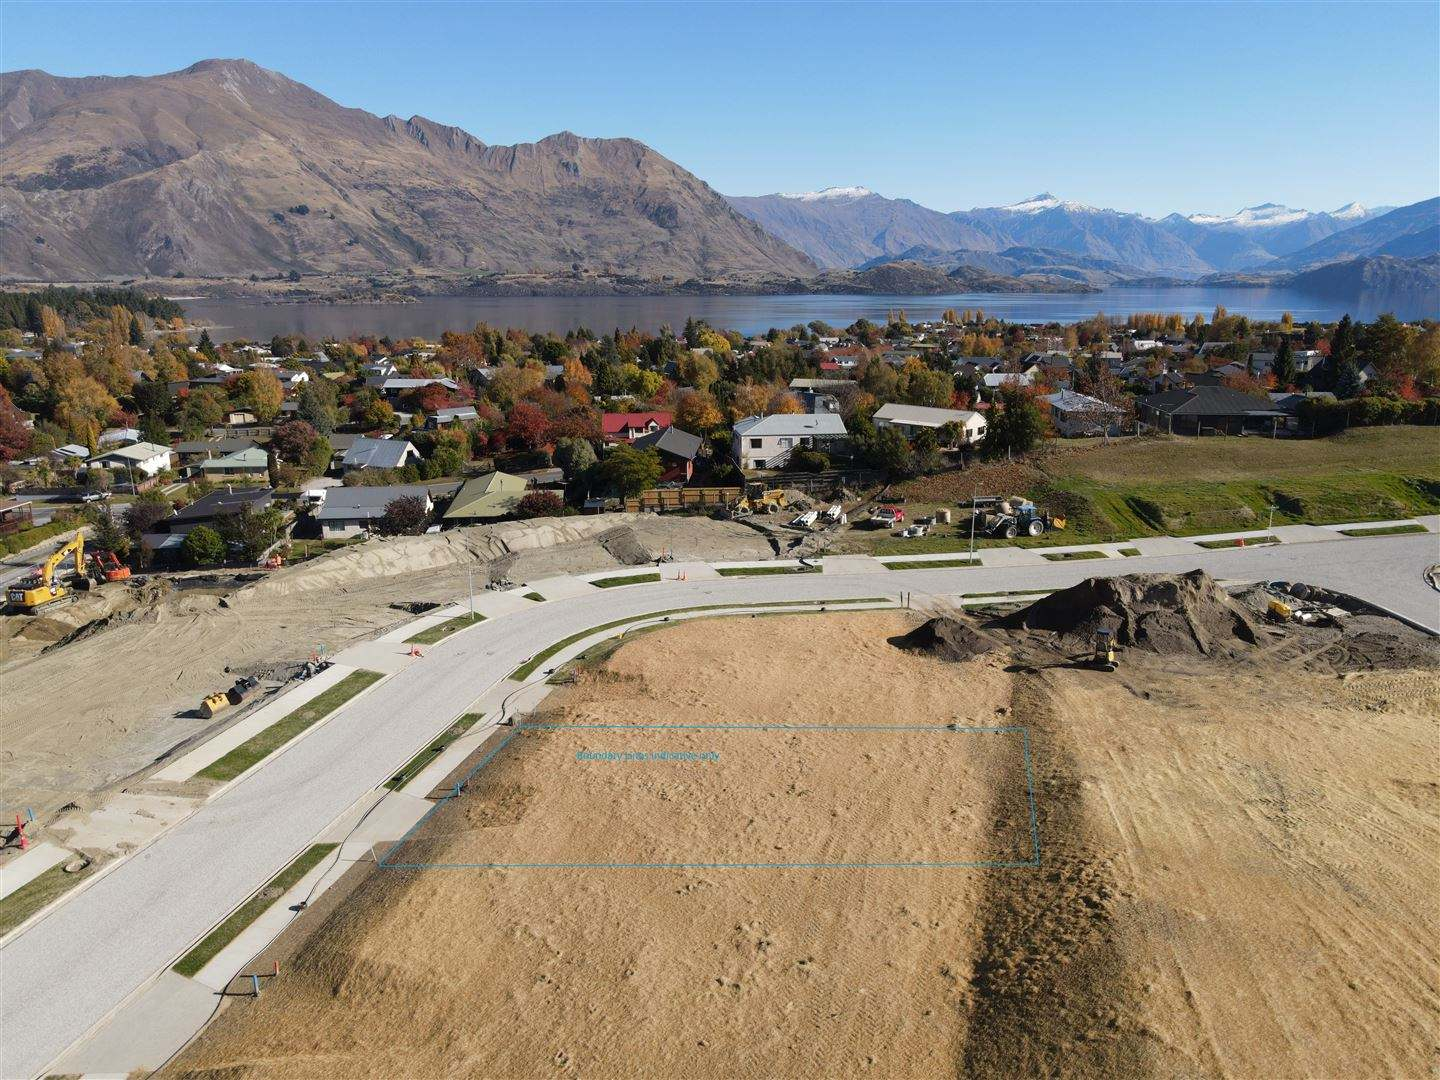 Wanaka Now isn't this a Clear View???